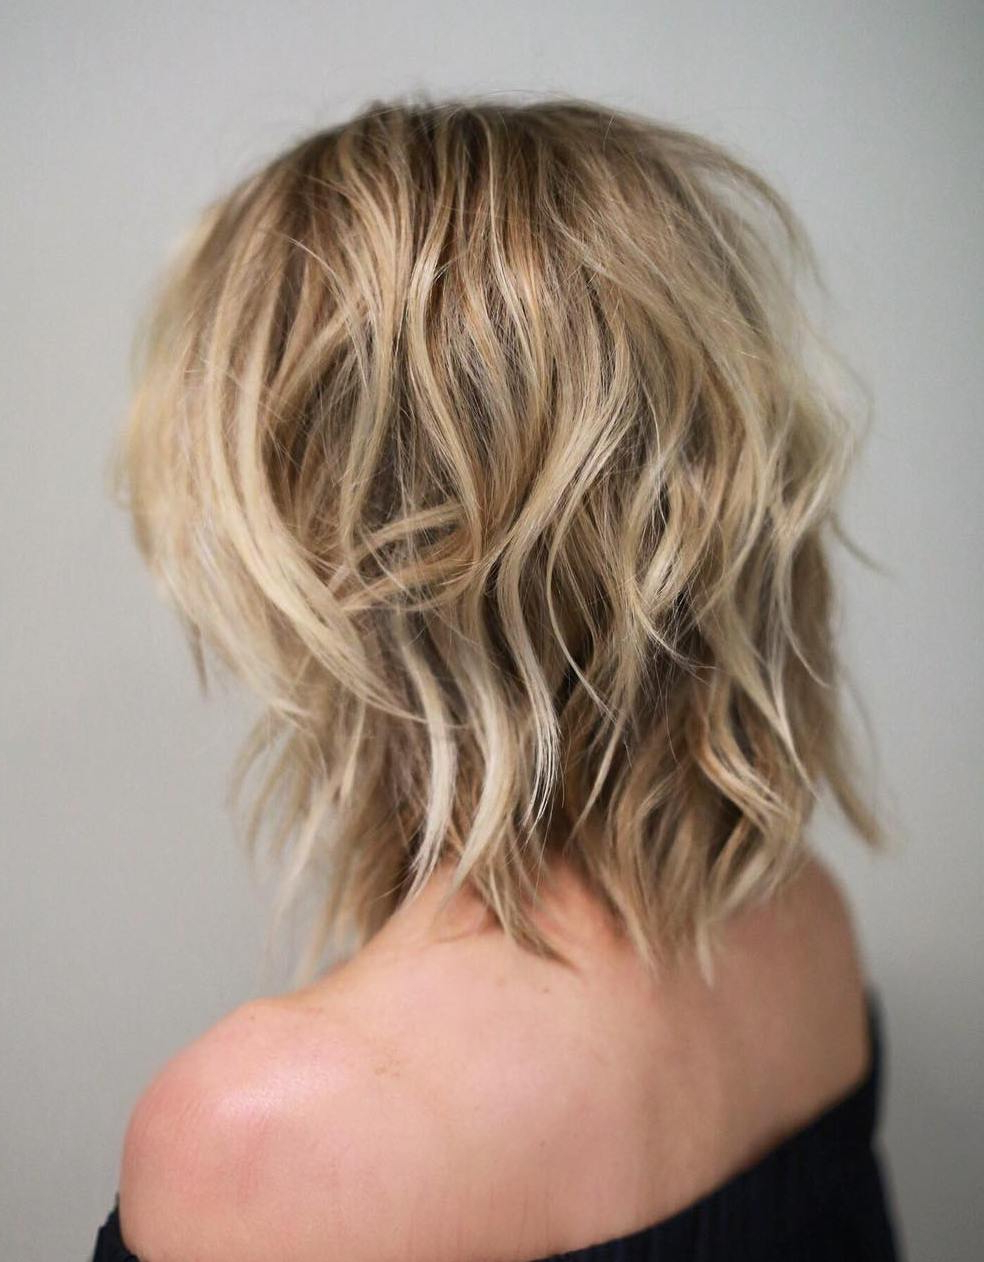 Most Current New Medium Hairstyles Pertaining To Medium Hairstyles And Haircuts For Shoulder Length Hair In 2018 — Trhs (View 12 of 20)